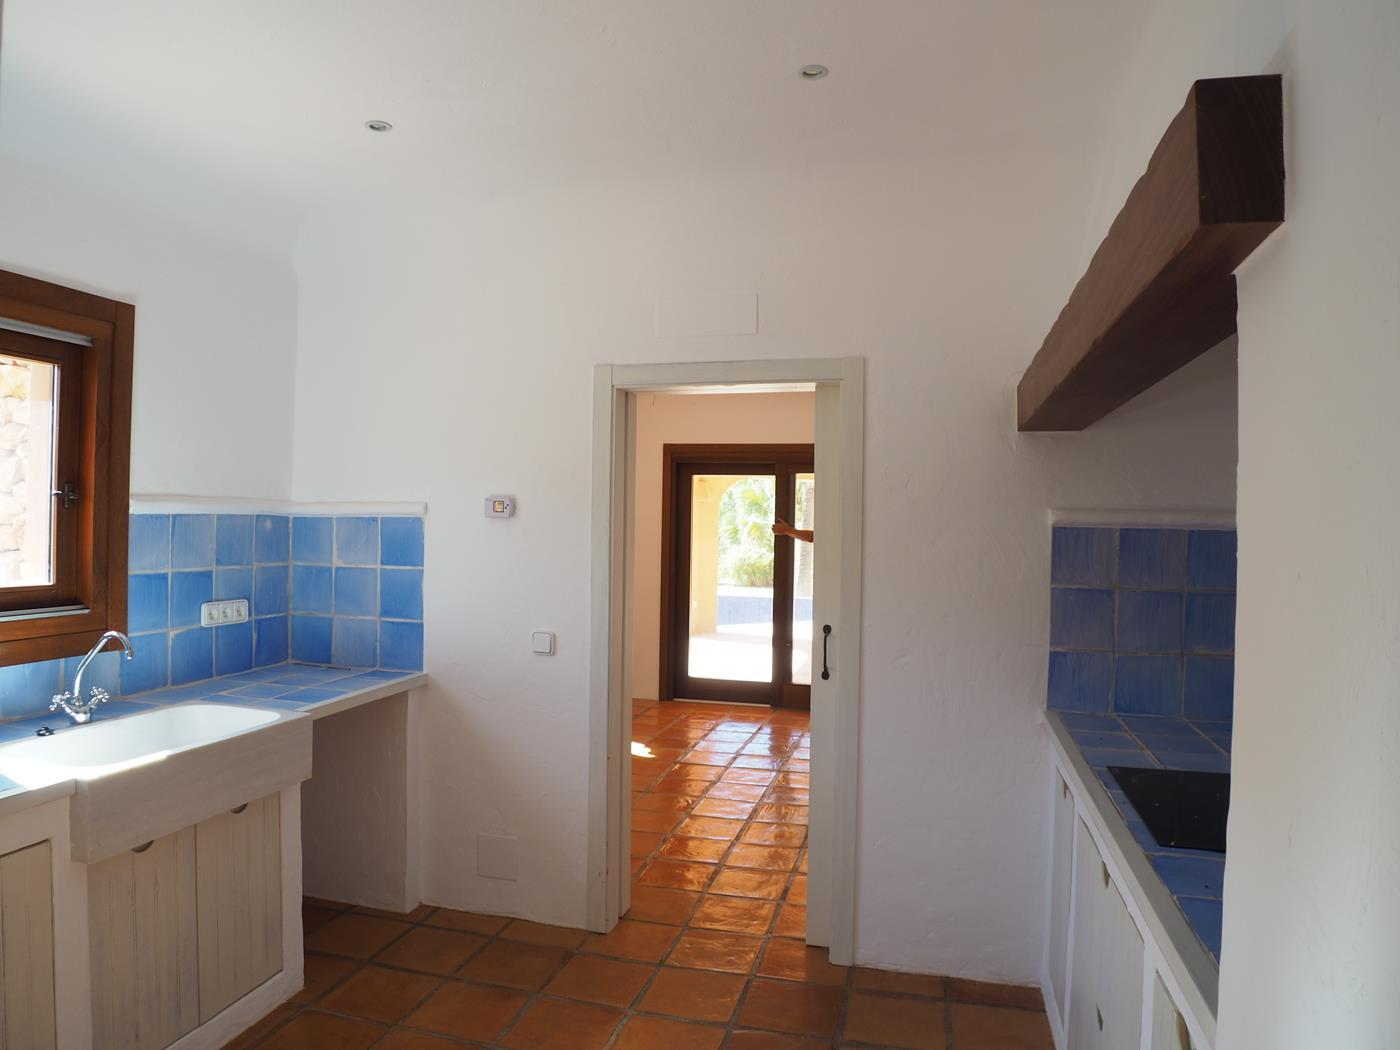 Fotogalería - 19 - Exceptional homes in the Costa Blanca. Unparalleled Service. Exceptional properties in the Costa Blanca